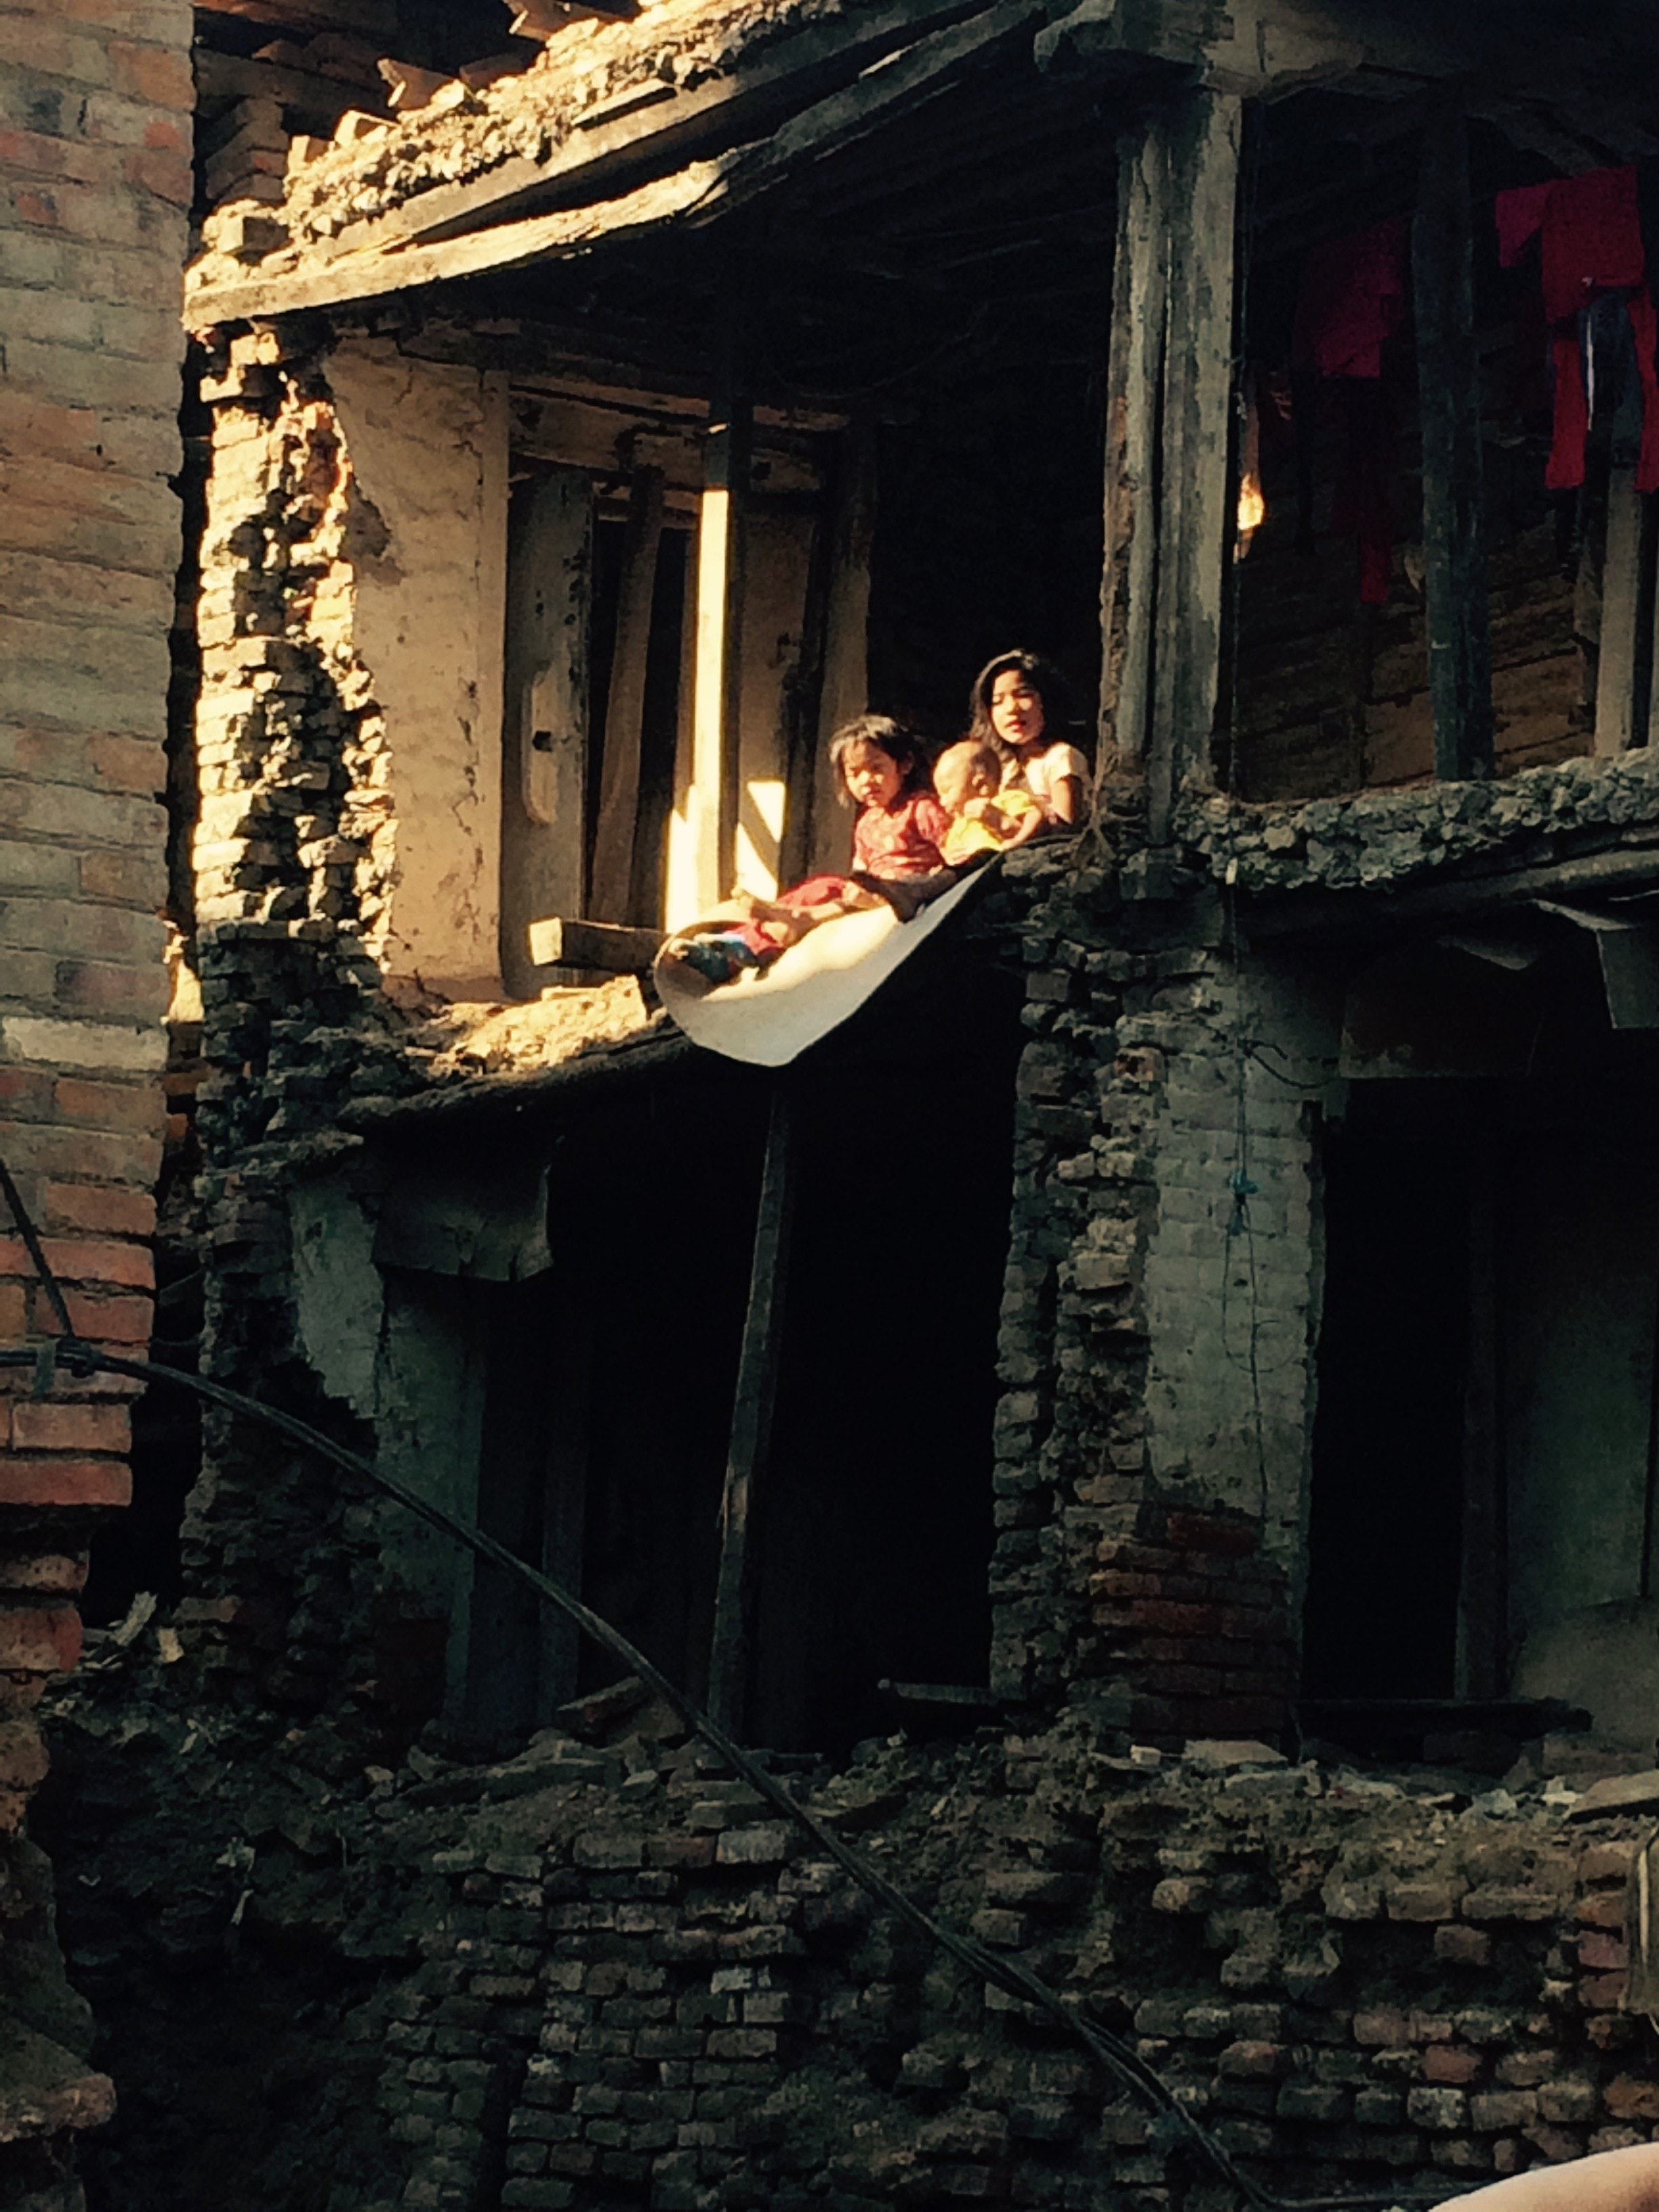 Some in Nepal are forced to live in buildings that could fall down at any time. Jason von Meding